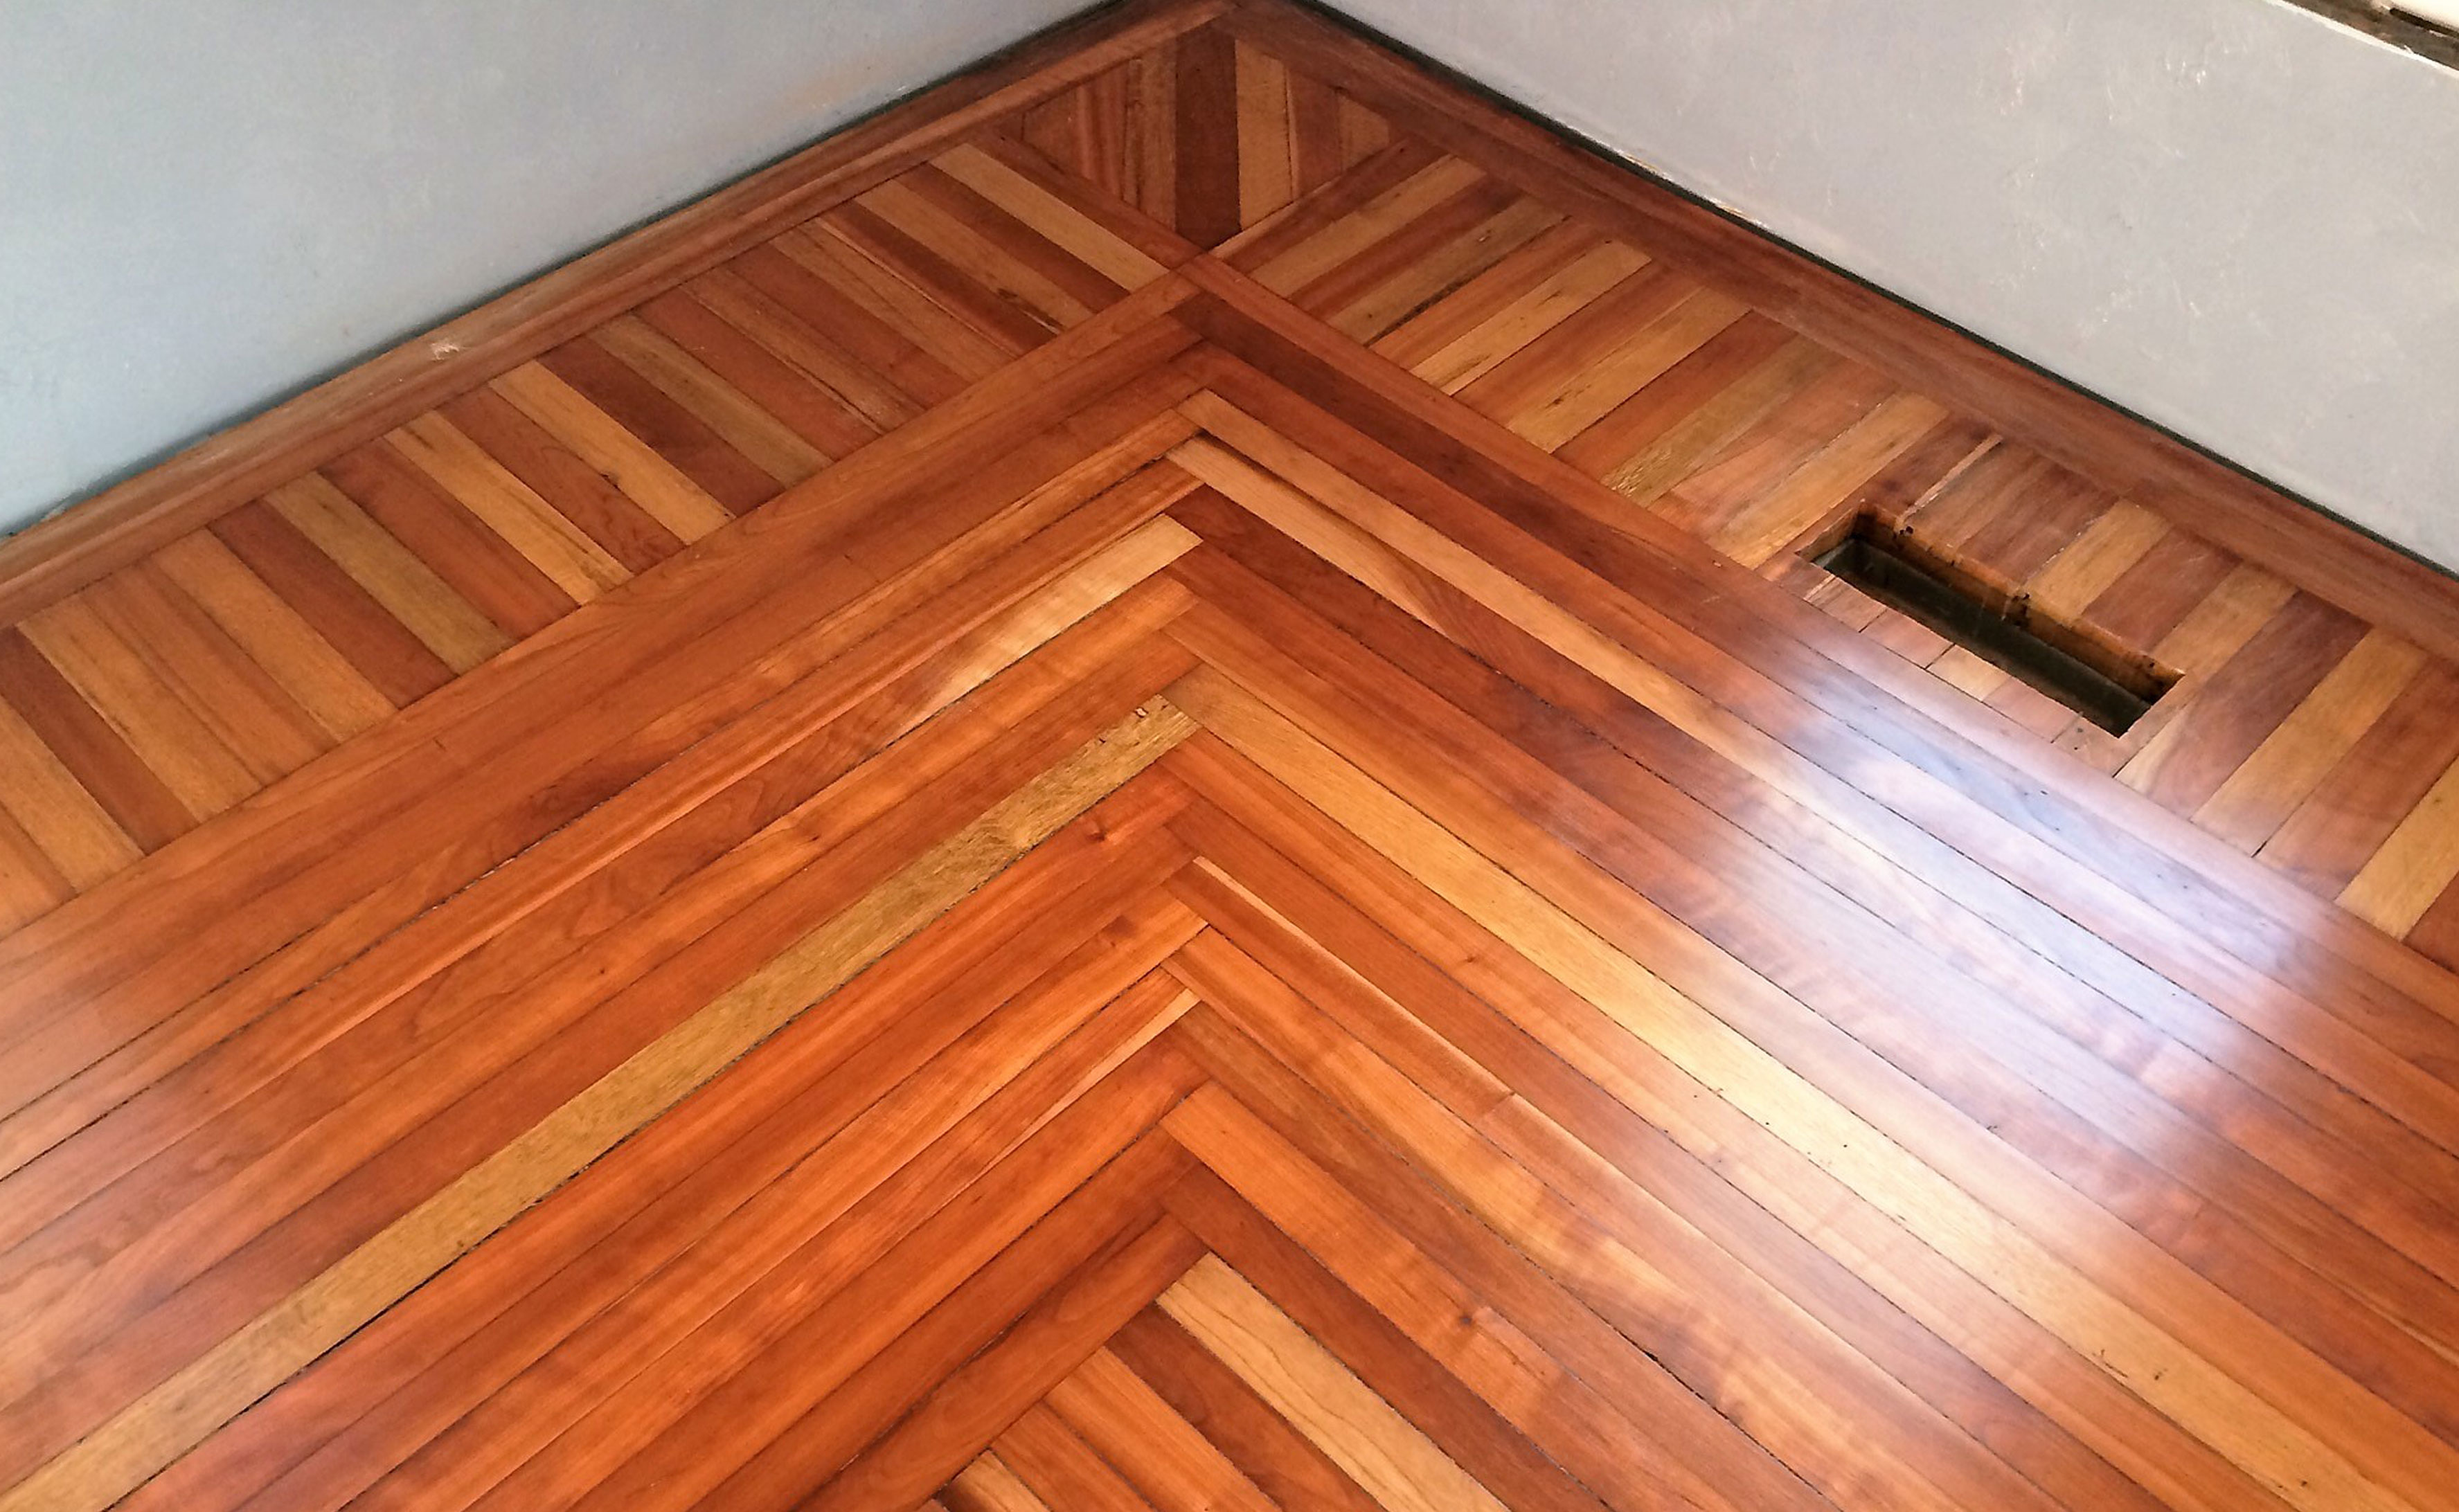 Wood floor refinishing sanding and refinishing wood for Hardwood floor refinishing